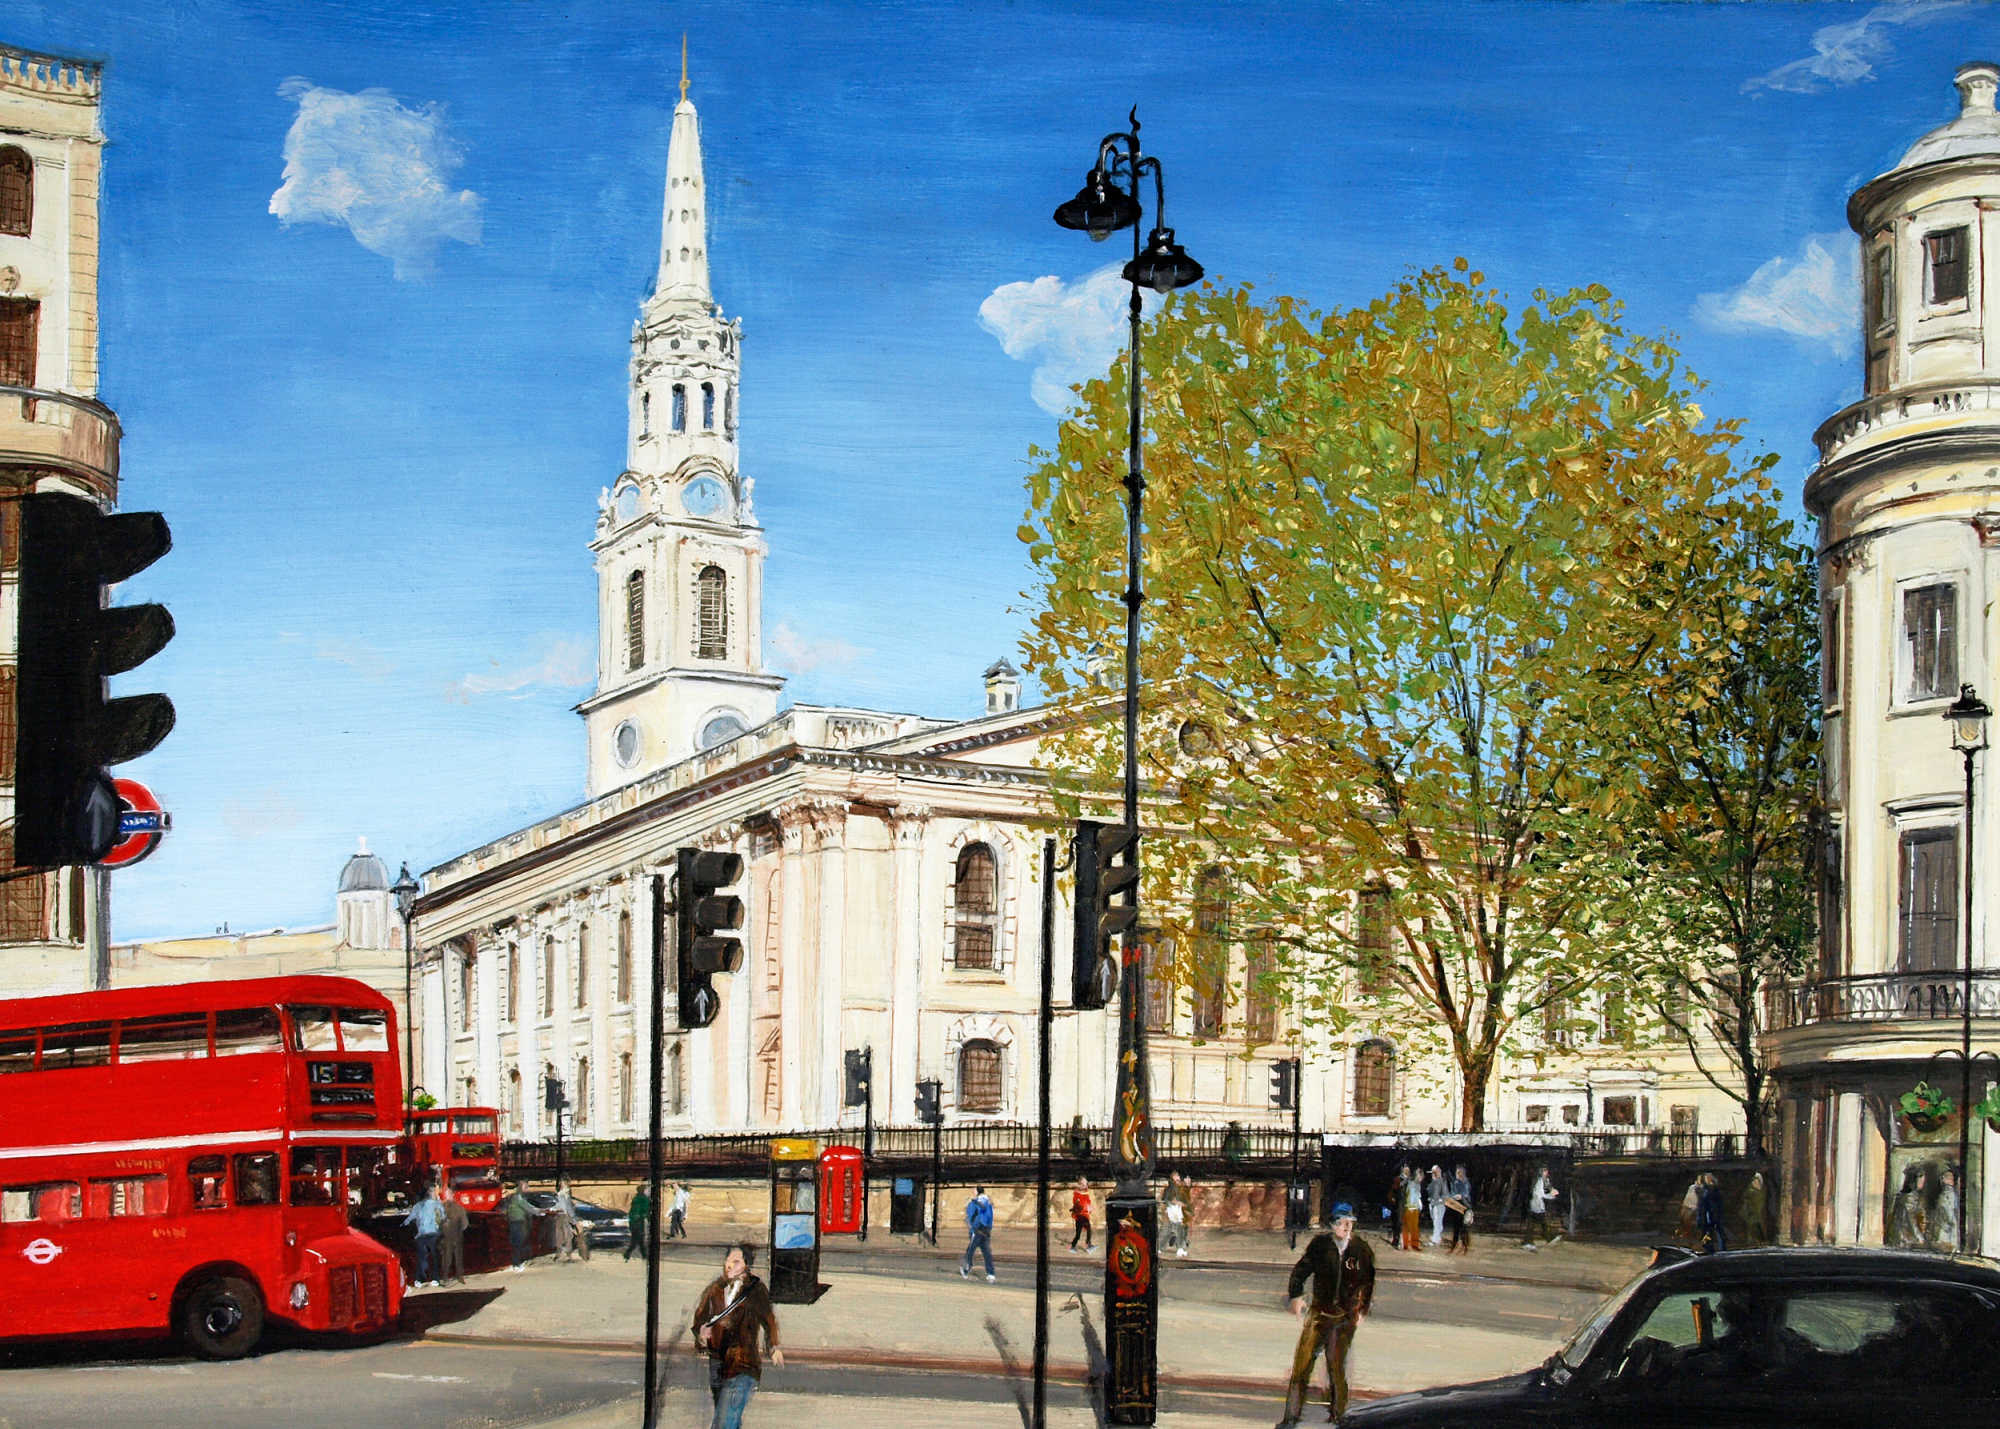 St Martin's Church, from the Strand, London (England)